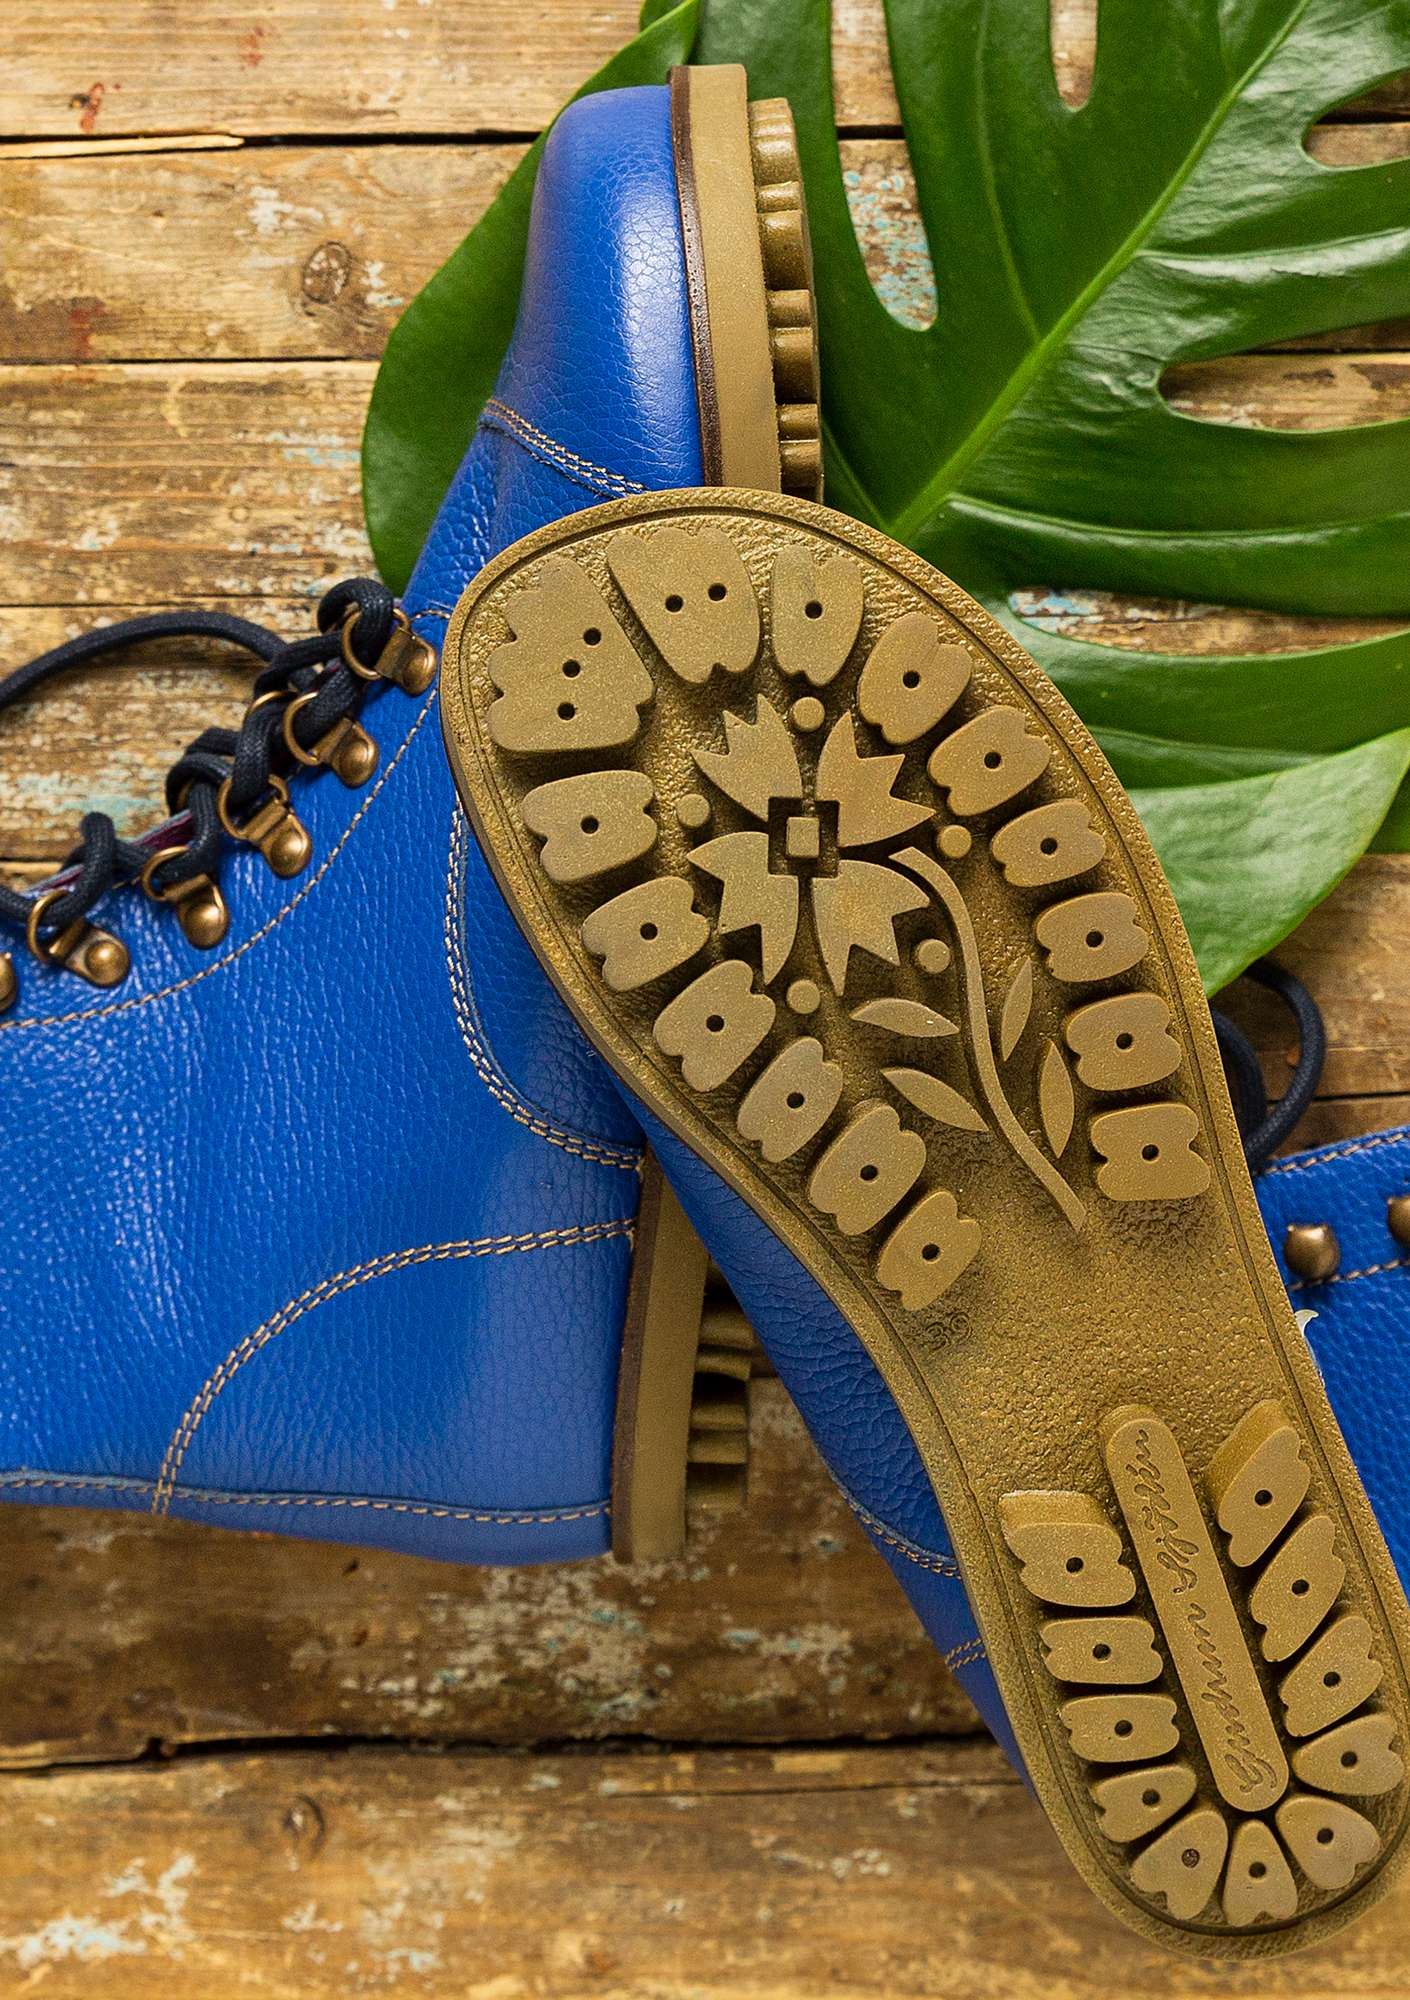 Bottines en nappa bleu porcelaine